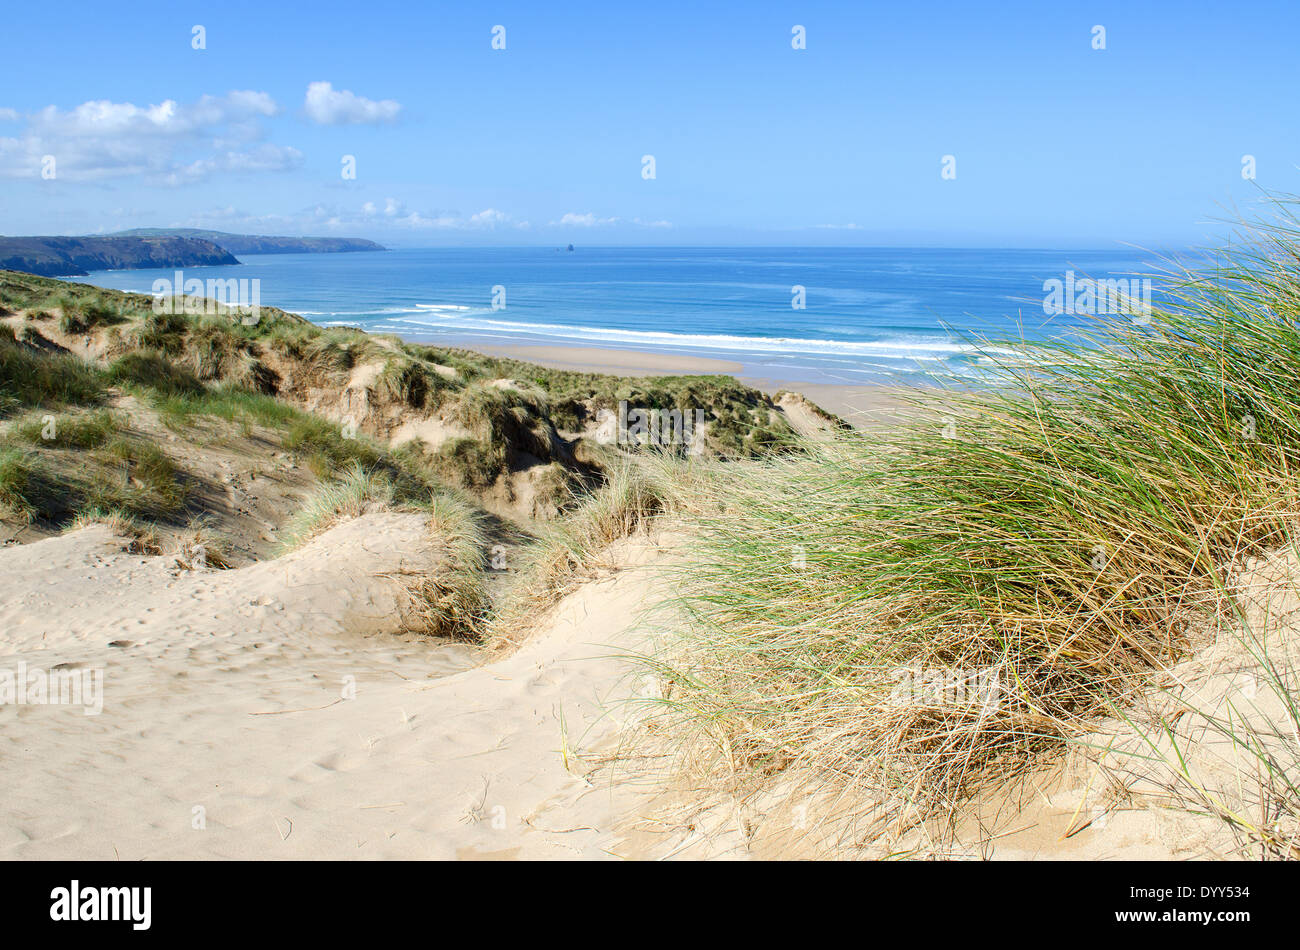 Penhale sands at Perranporth in Cornwall, UK - Stock Image